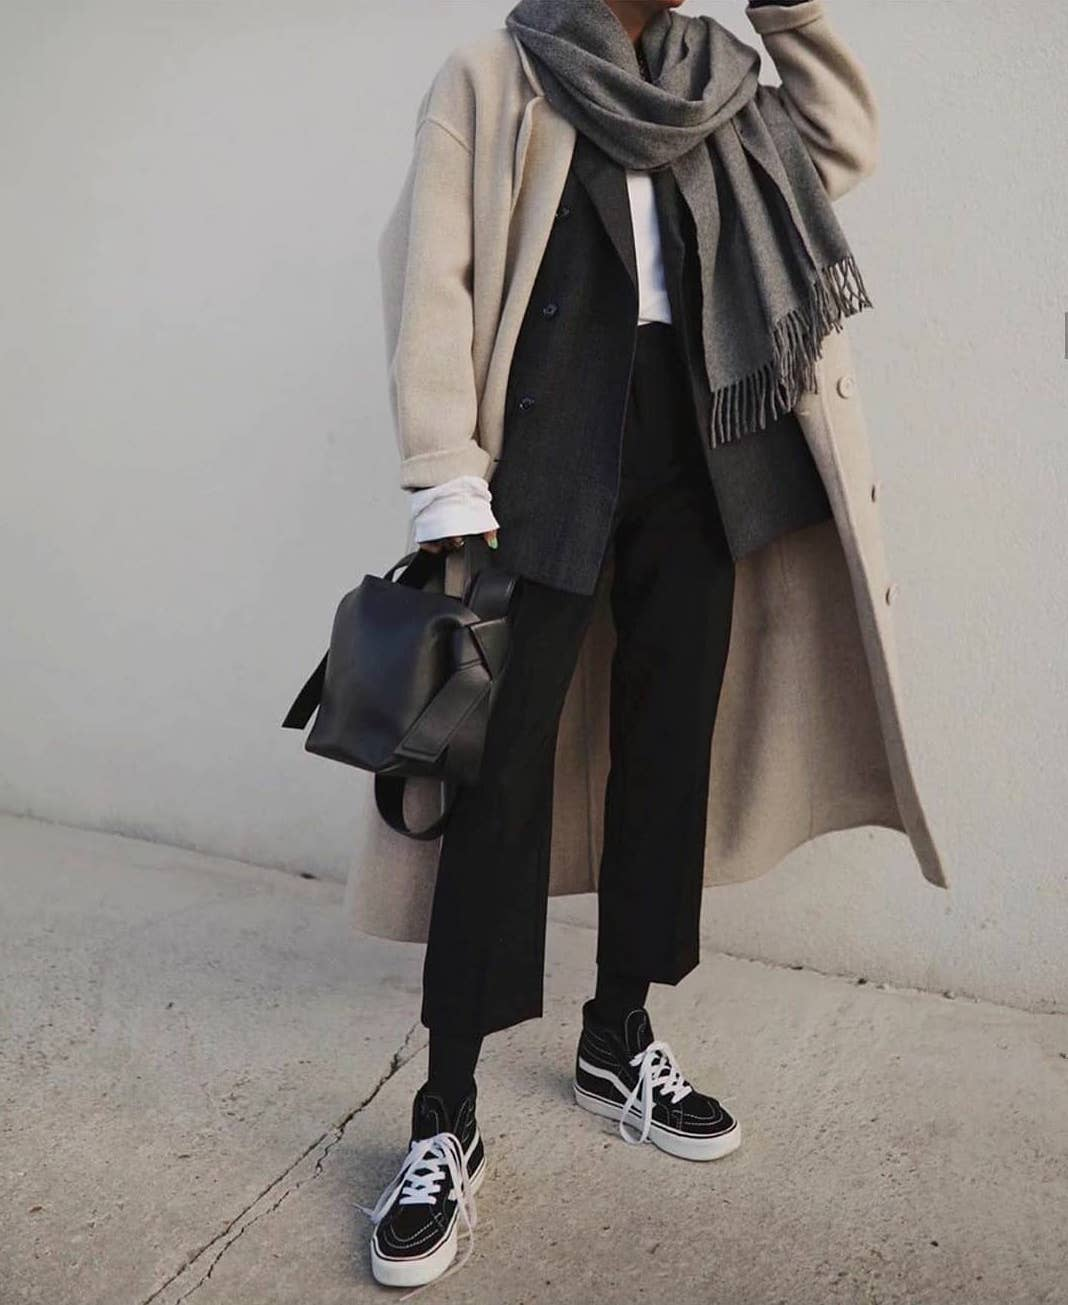 Give Us All the Layers for Winter